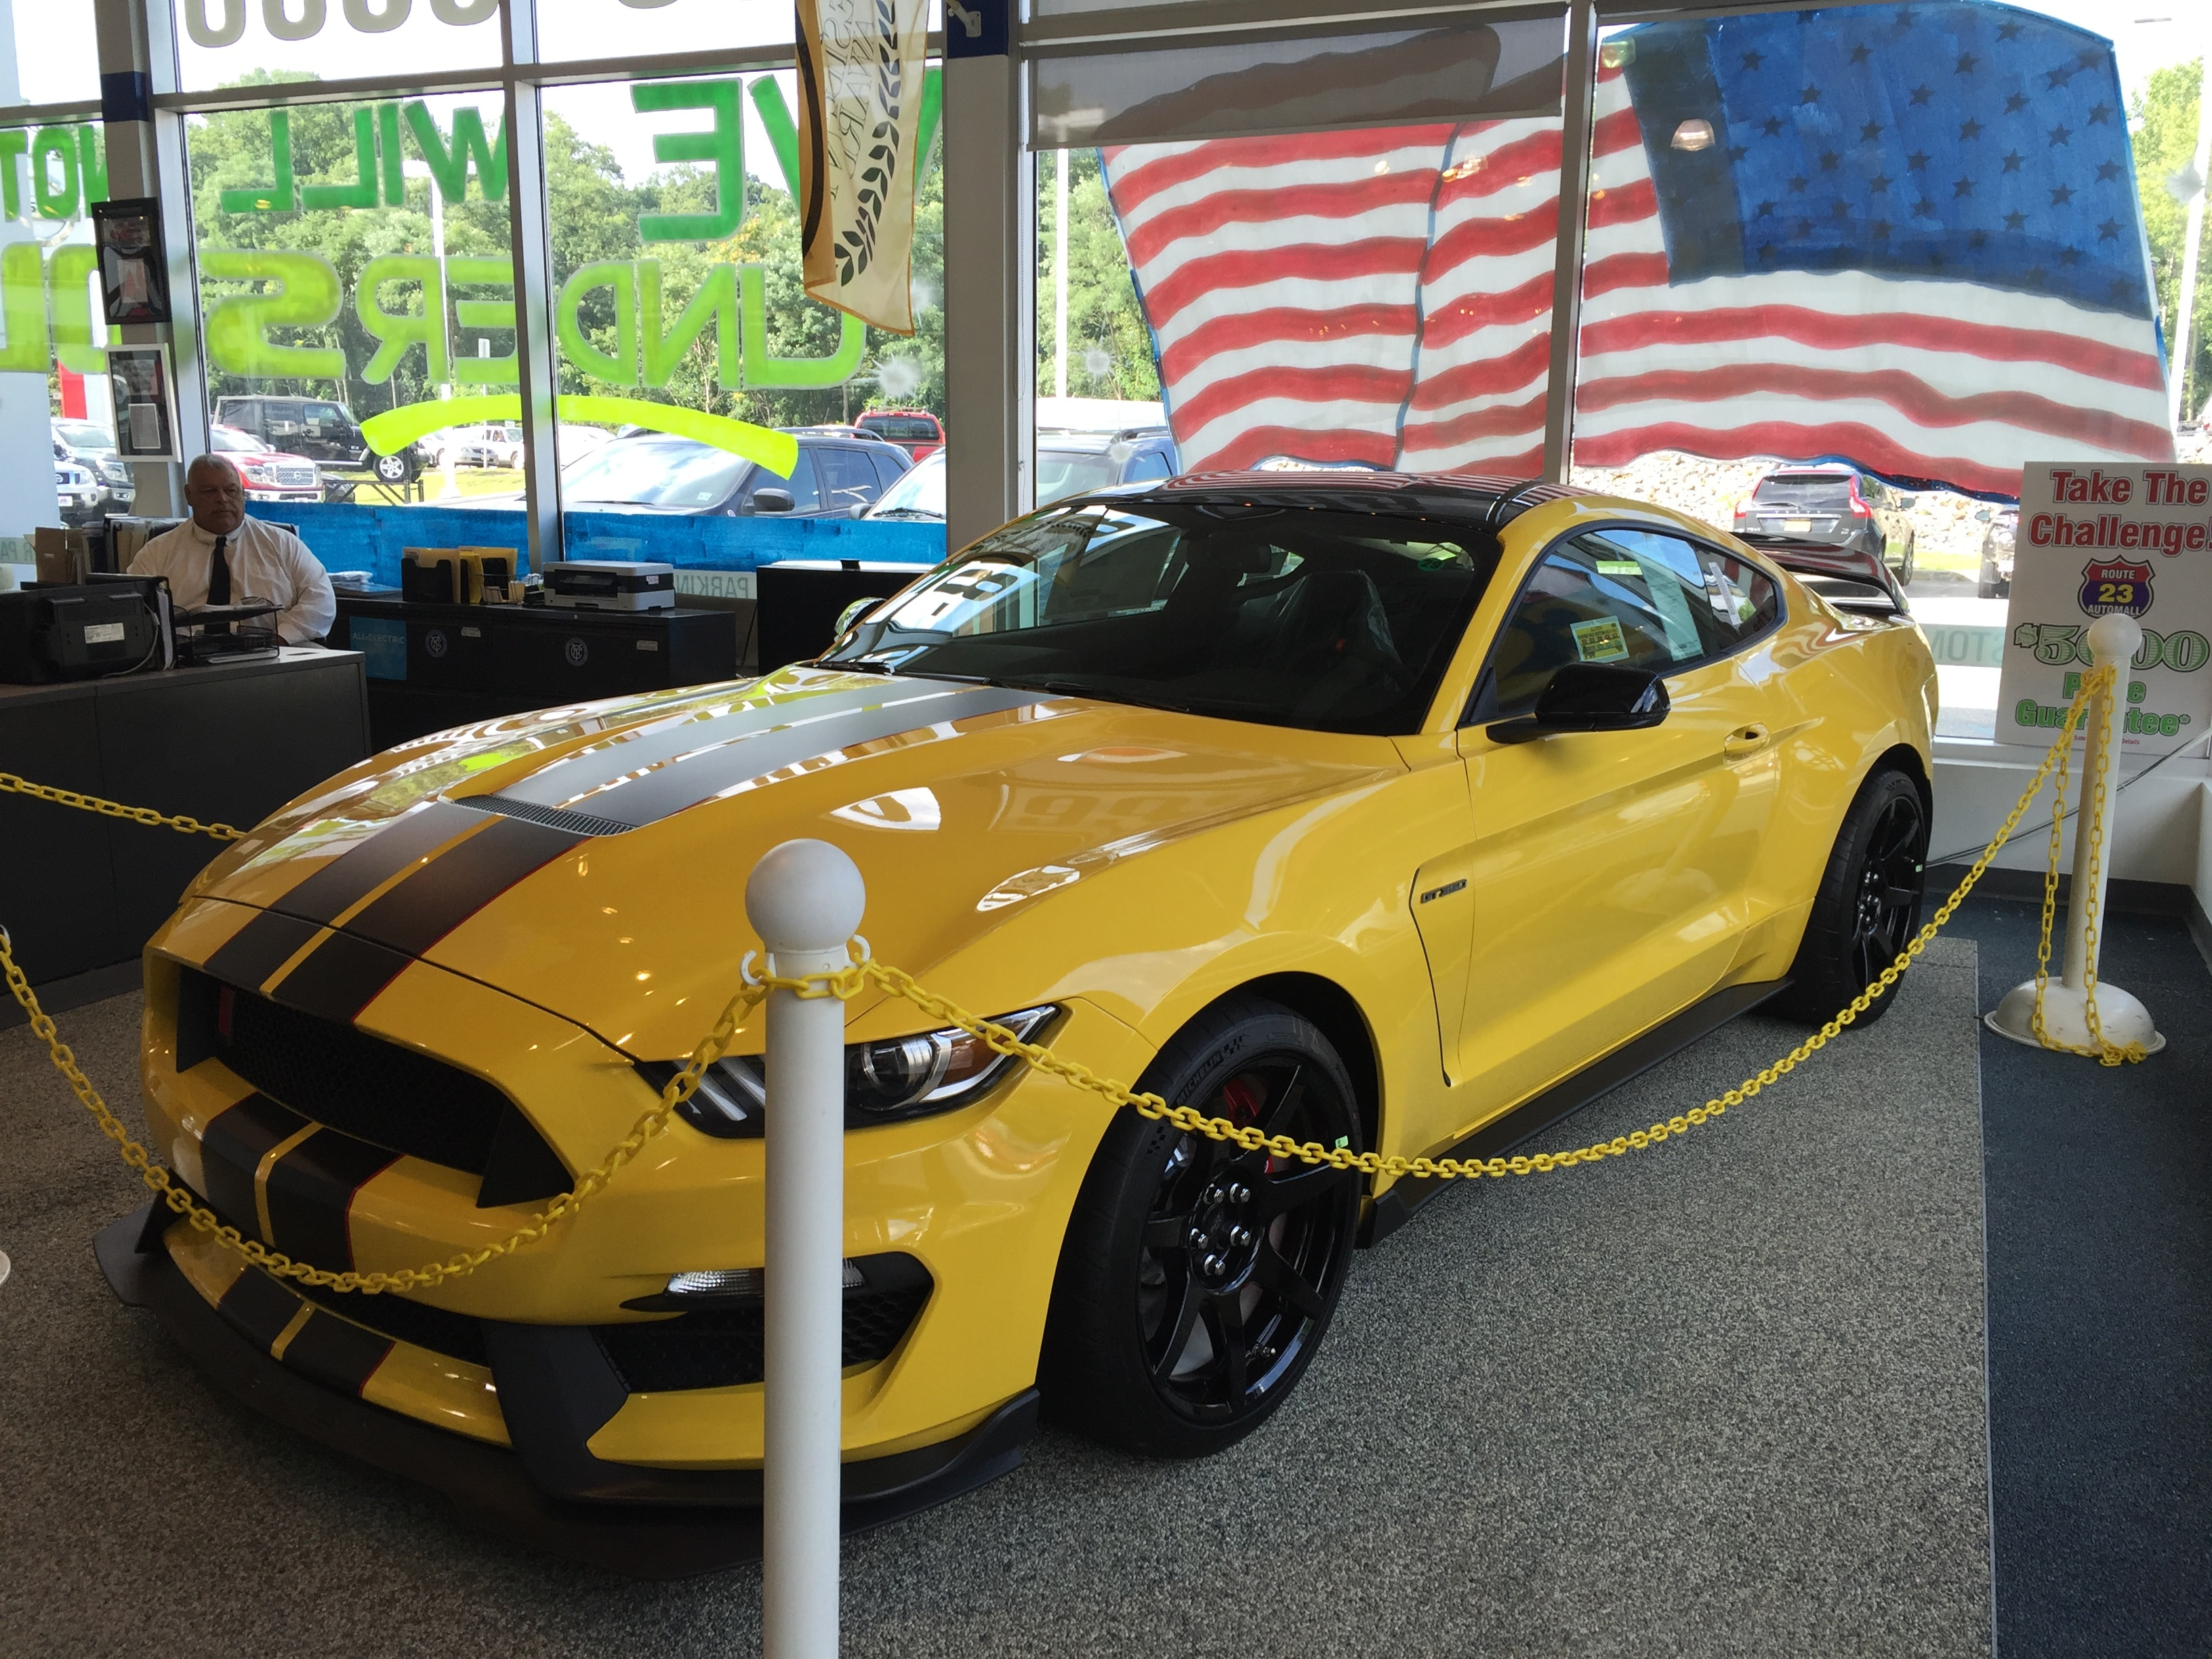 Ford Mustang Shelby Gt350r And Shelby Gt350 Cobra For Sale Nj